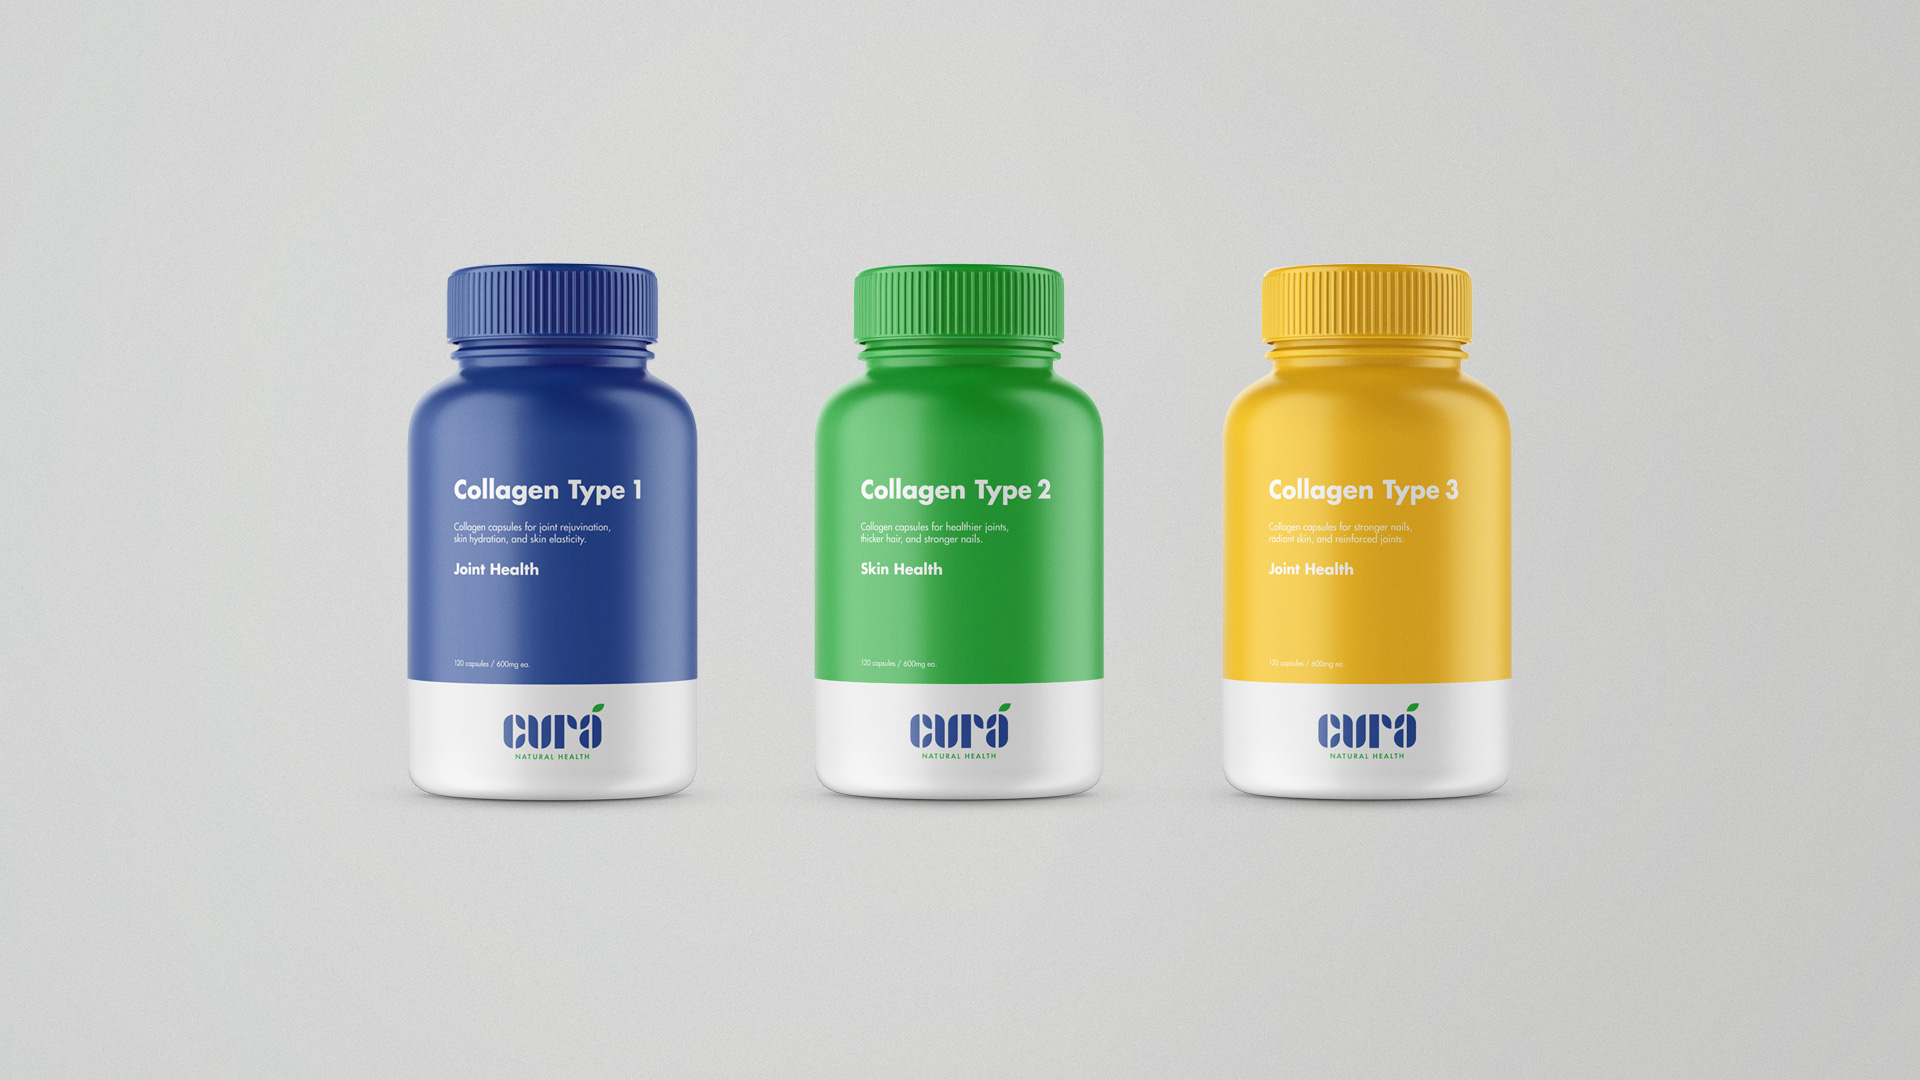 Cura - Adobe Hidden Treasures Logo Design Contest Winner - Packaging Design - Supplement Bottle 3